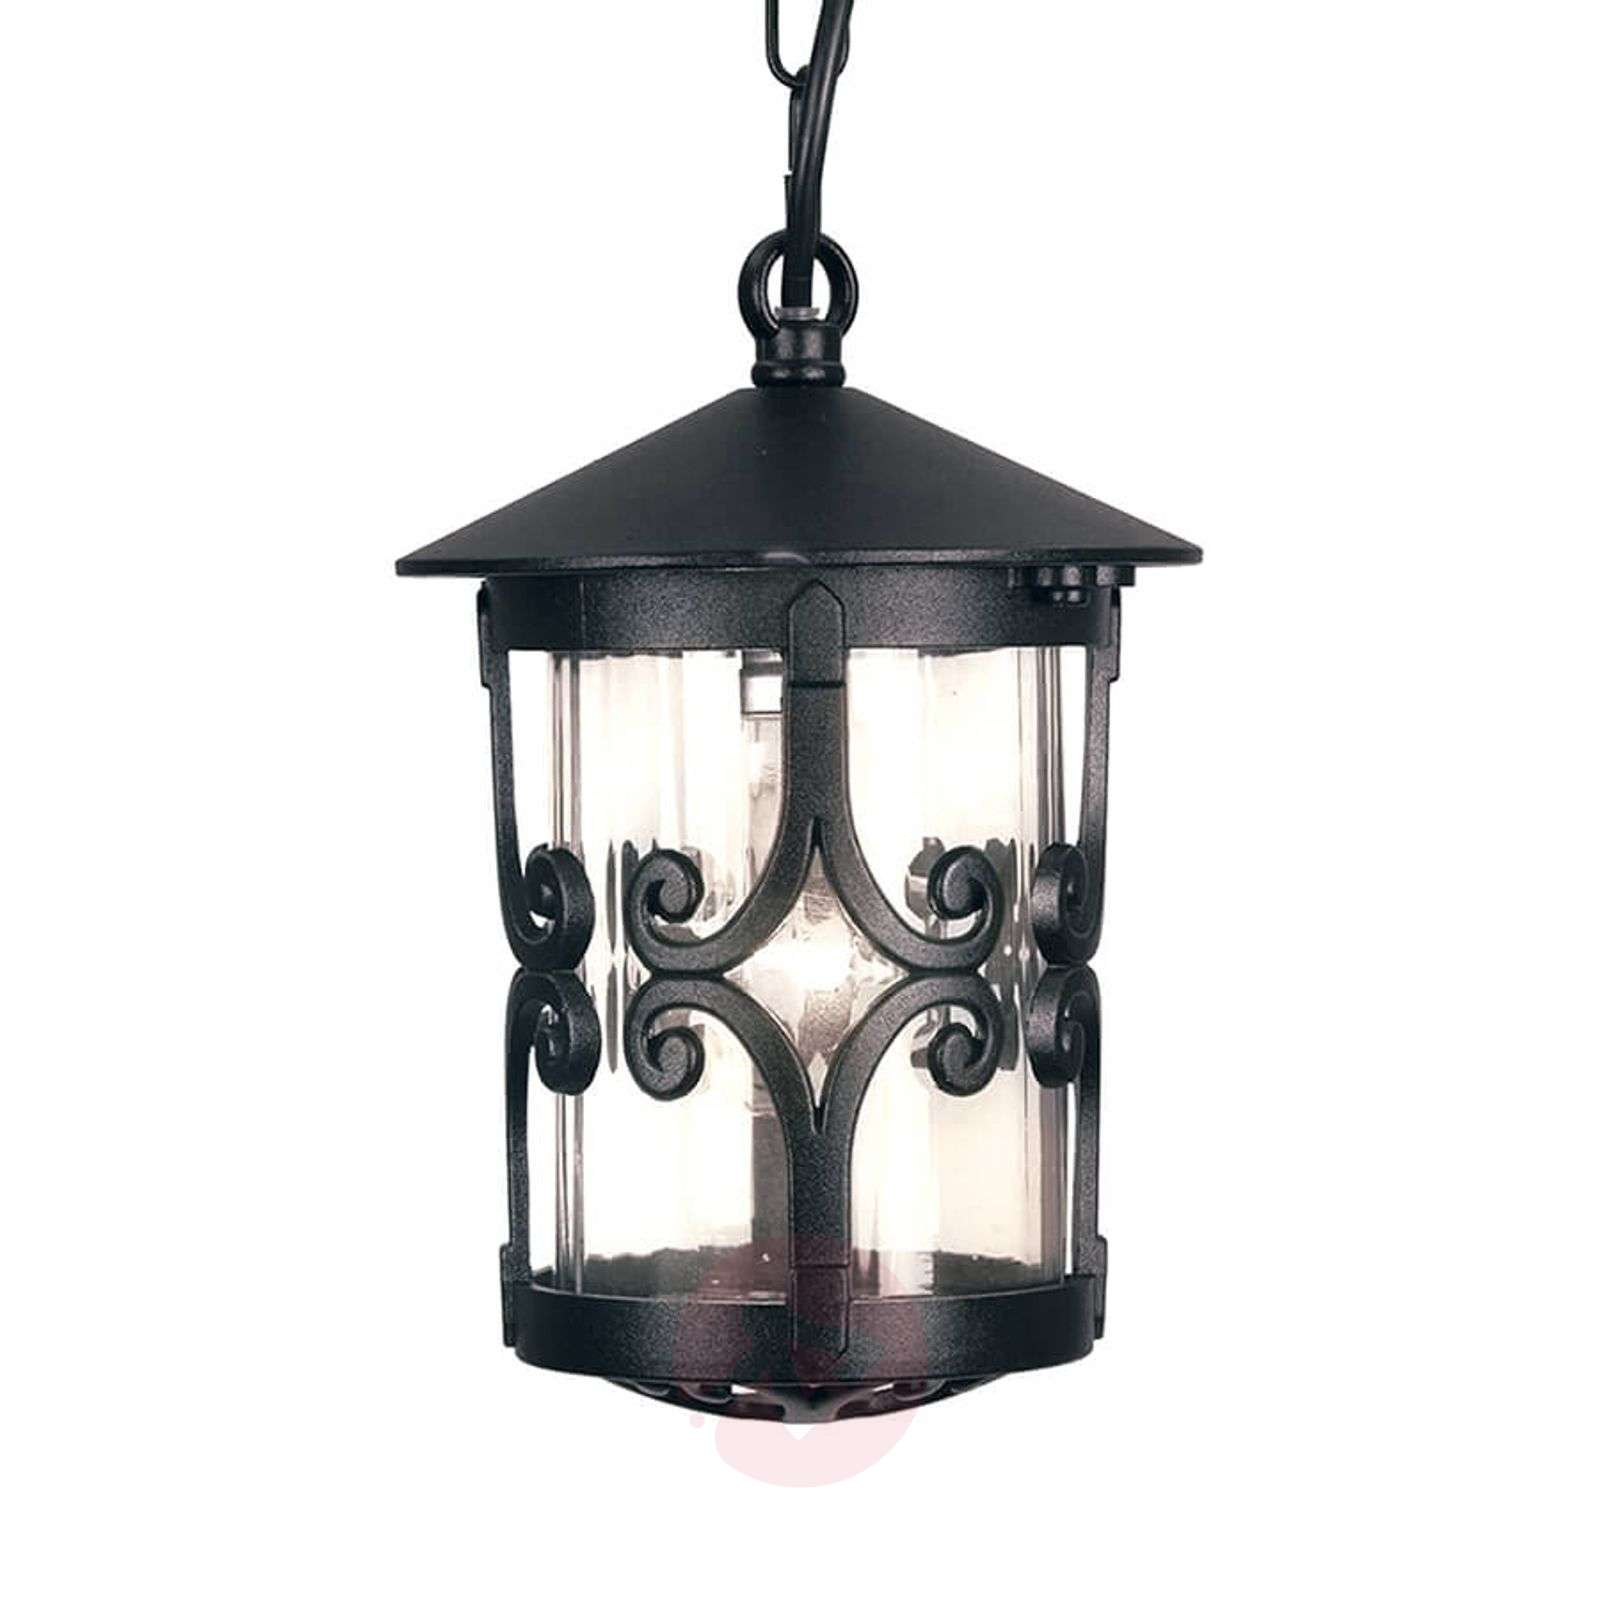 Hereford hanging light with chain suspension-3048695-01